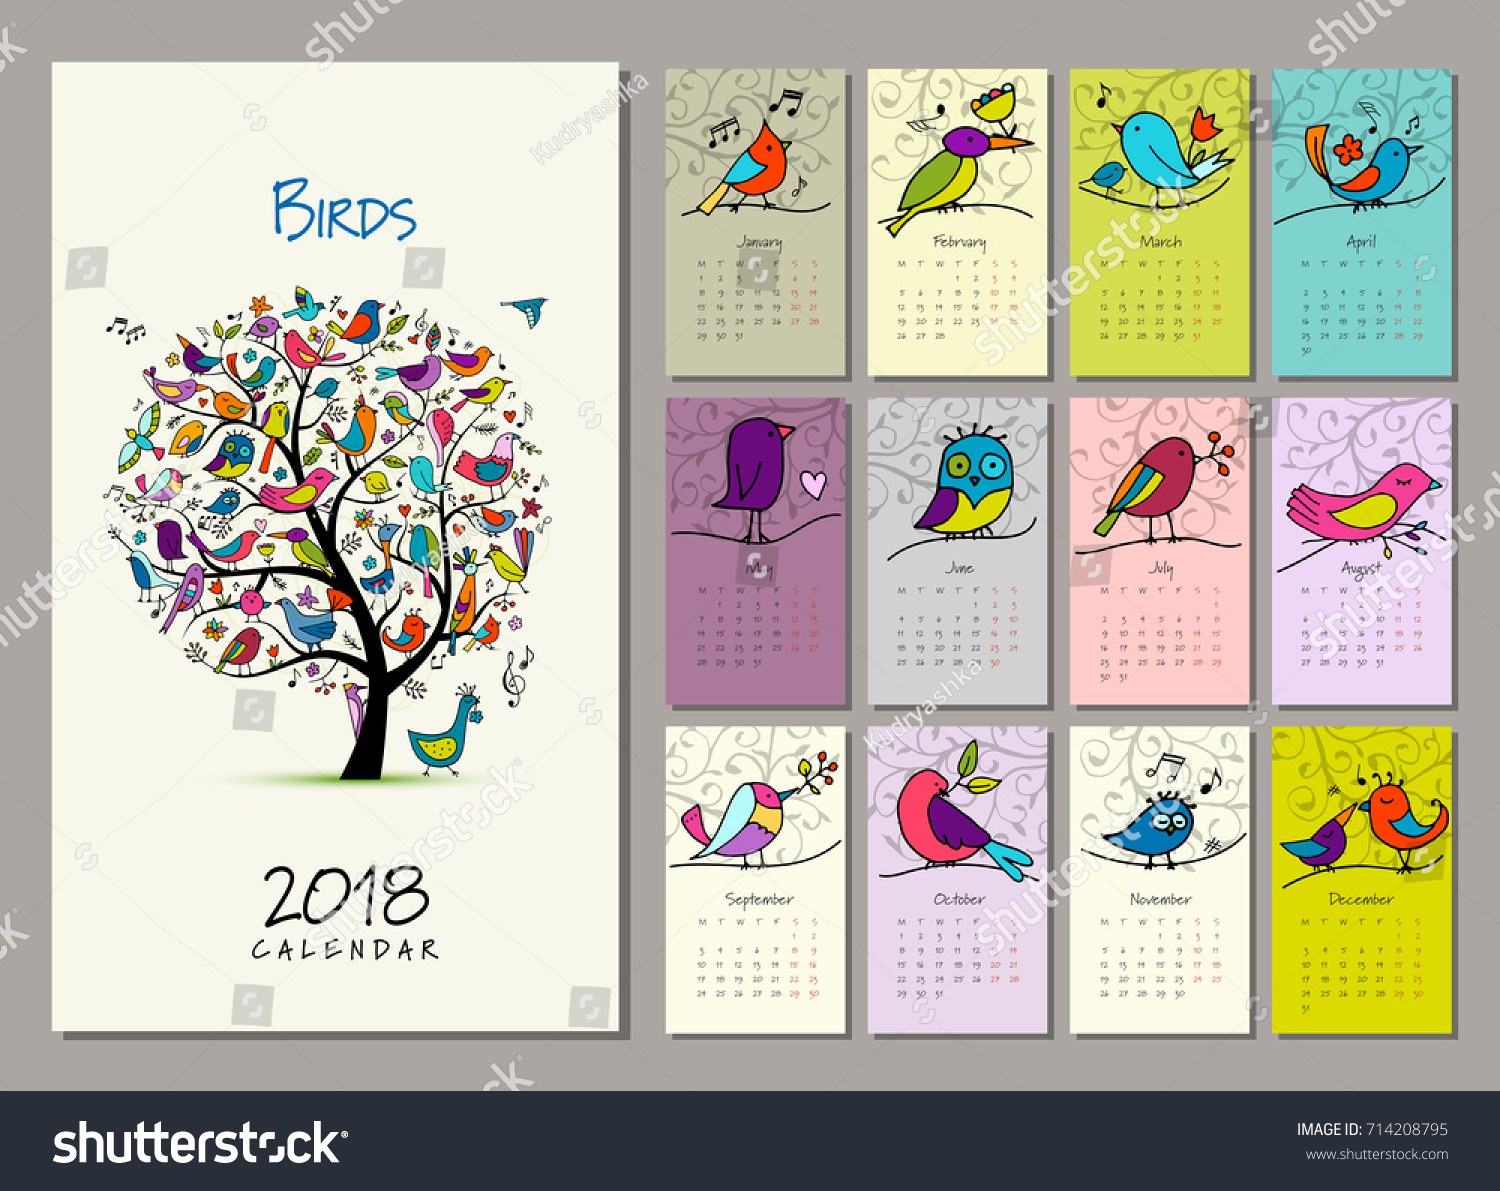 Calendar Illustration Vector : Birds tree calendar design vector stock